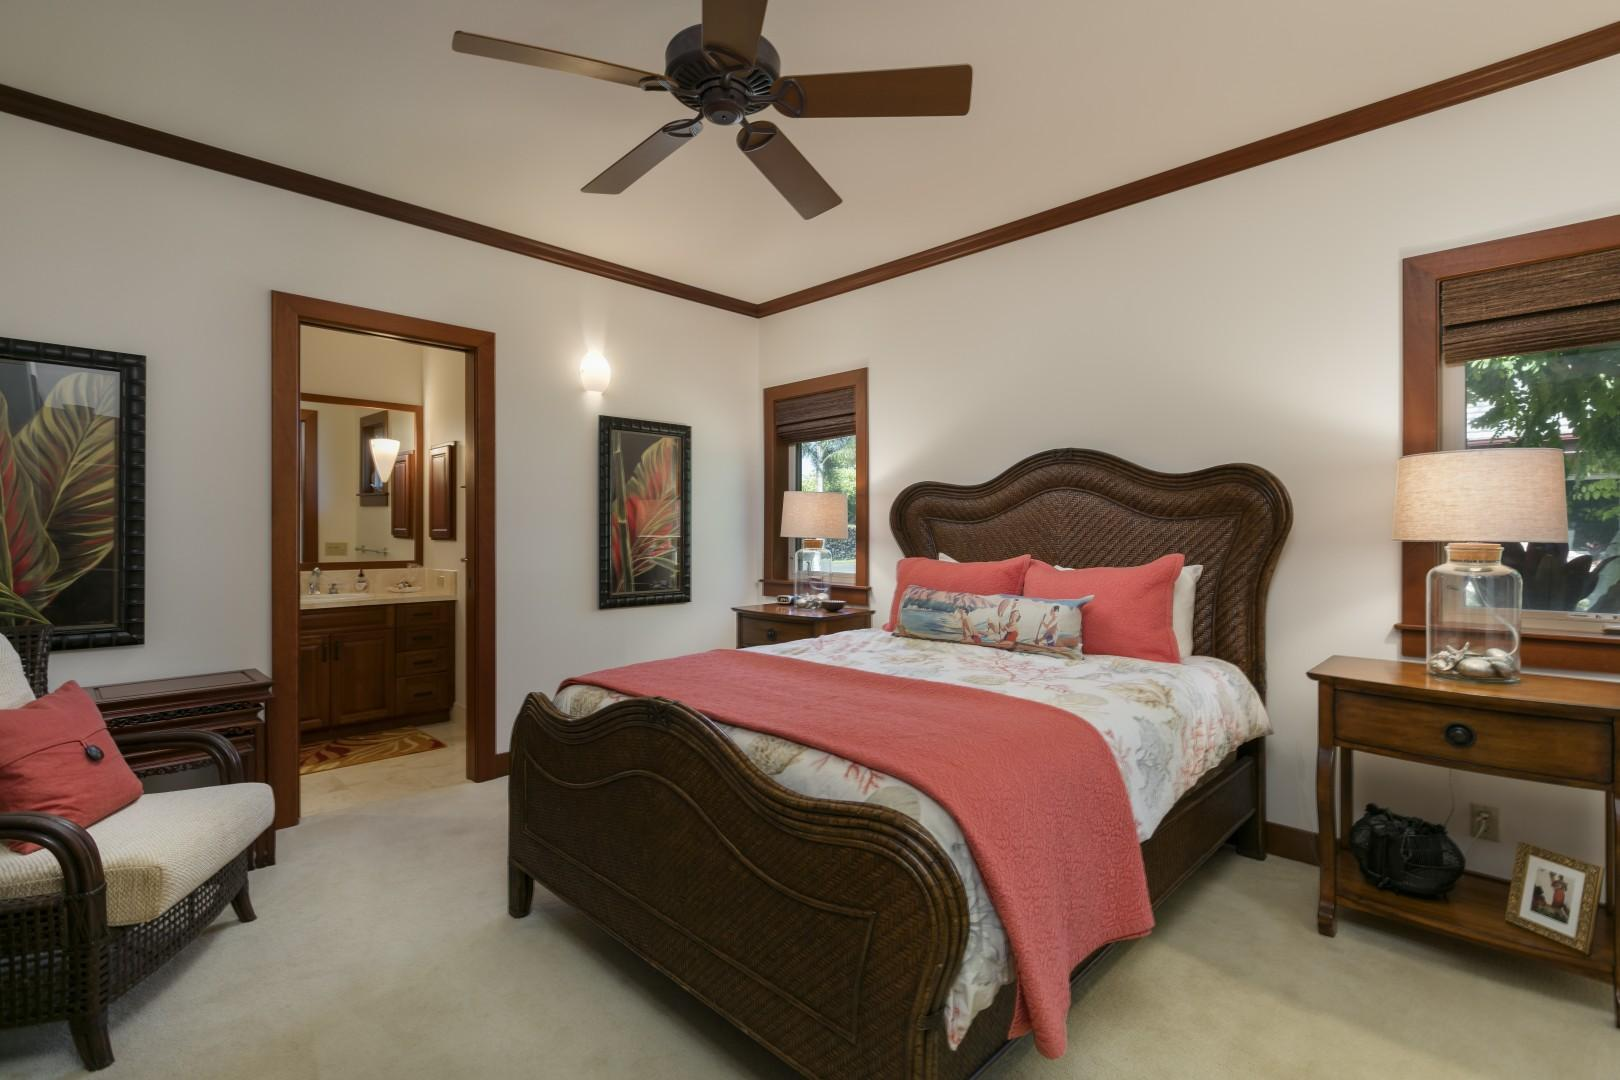 3rd Bedroom with QUEEN BED and its own bathroom